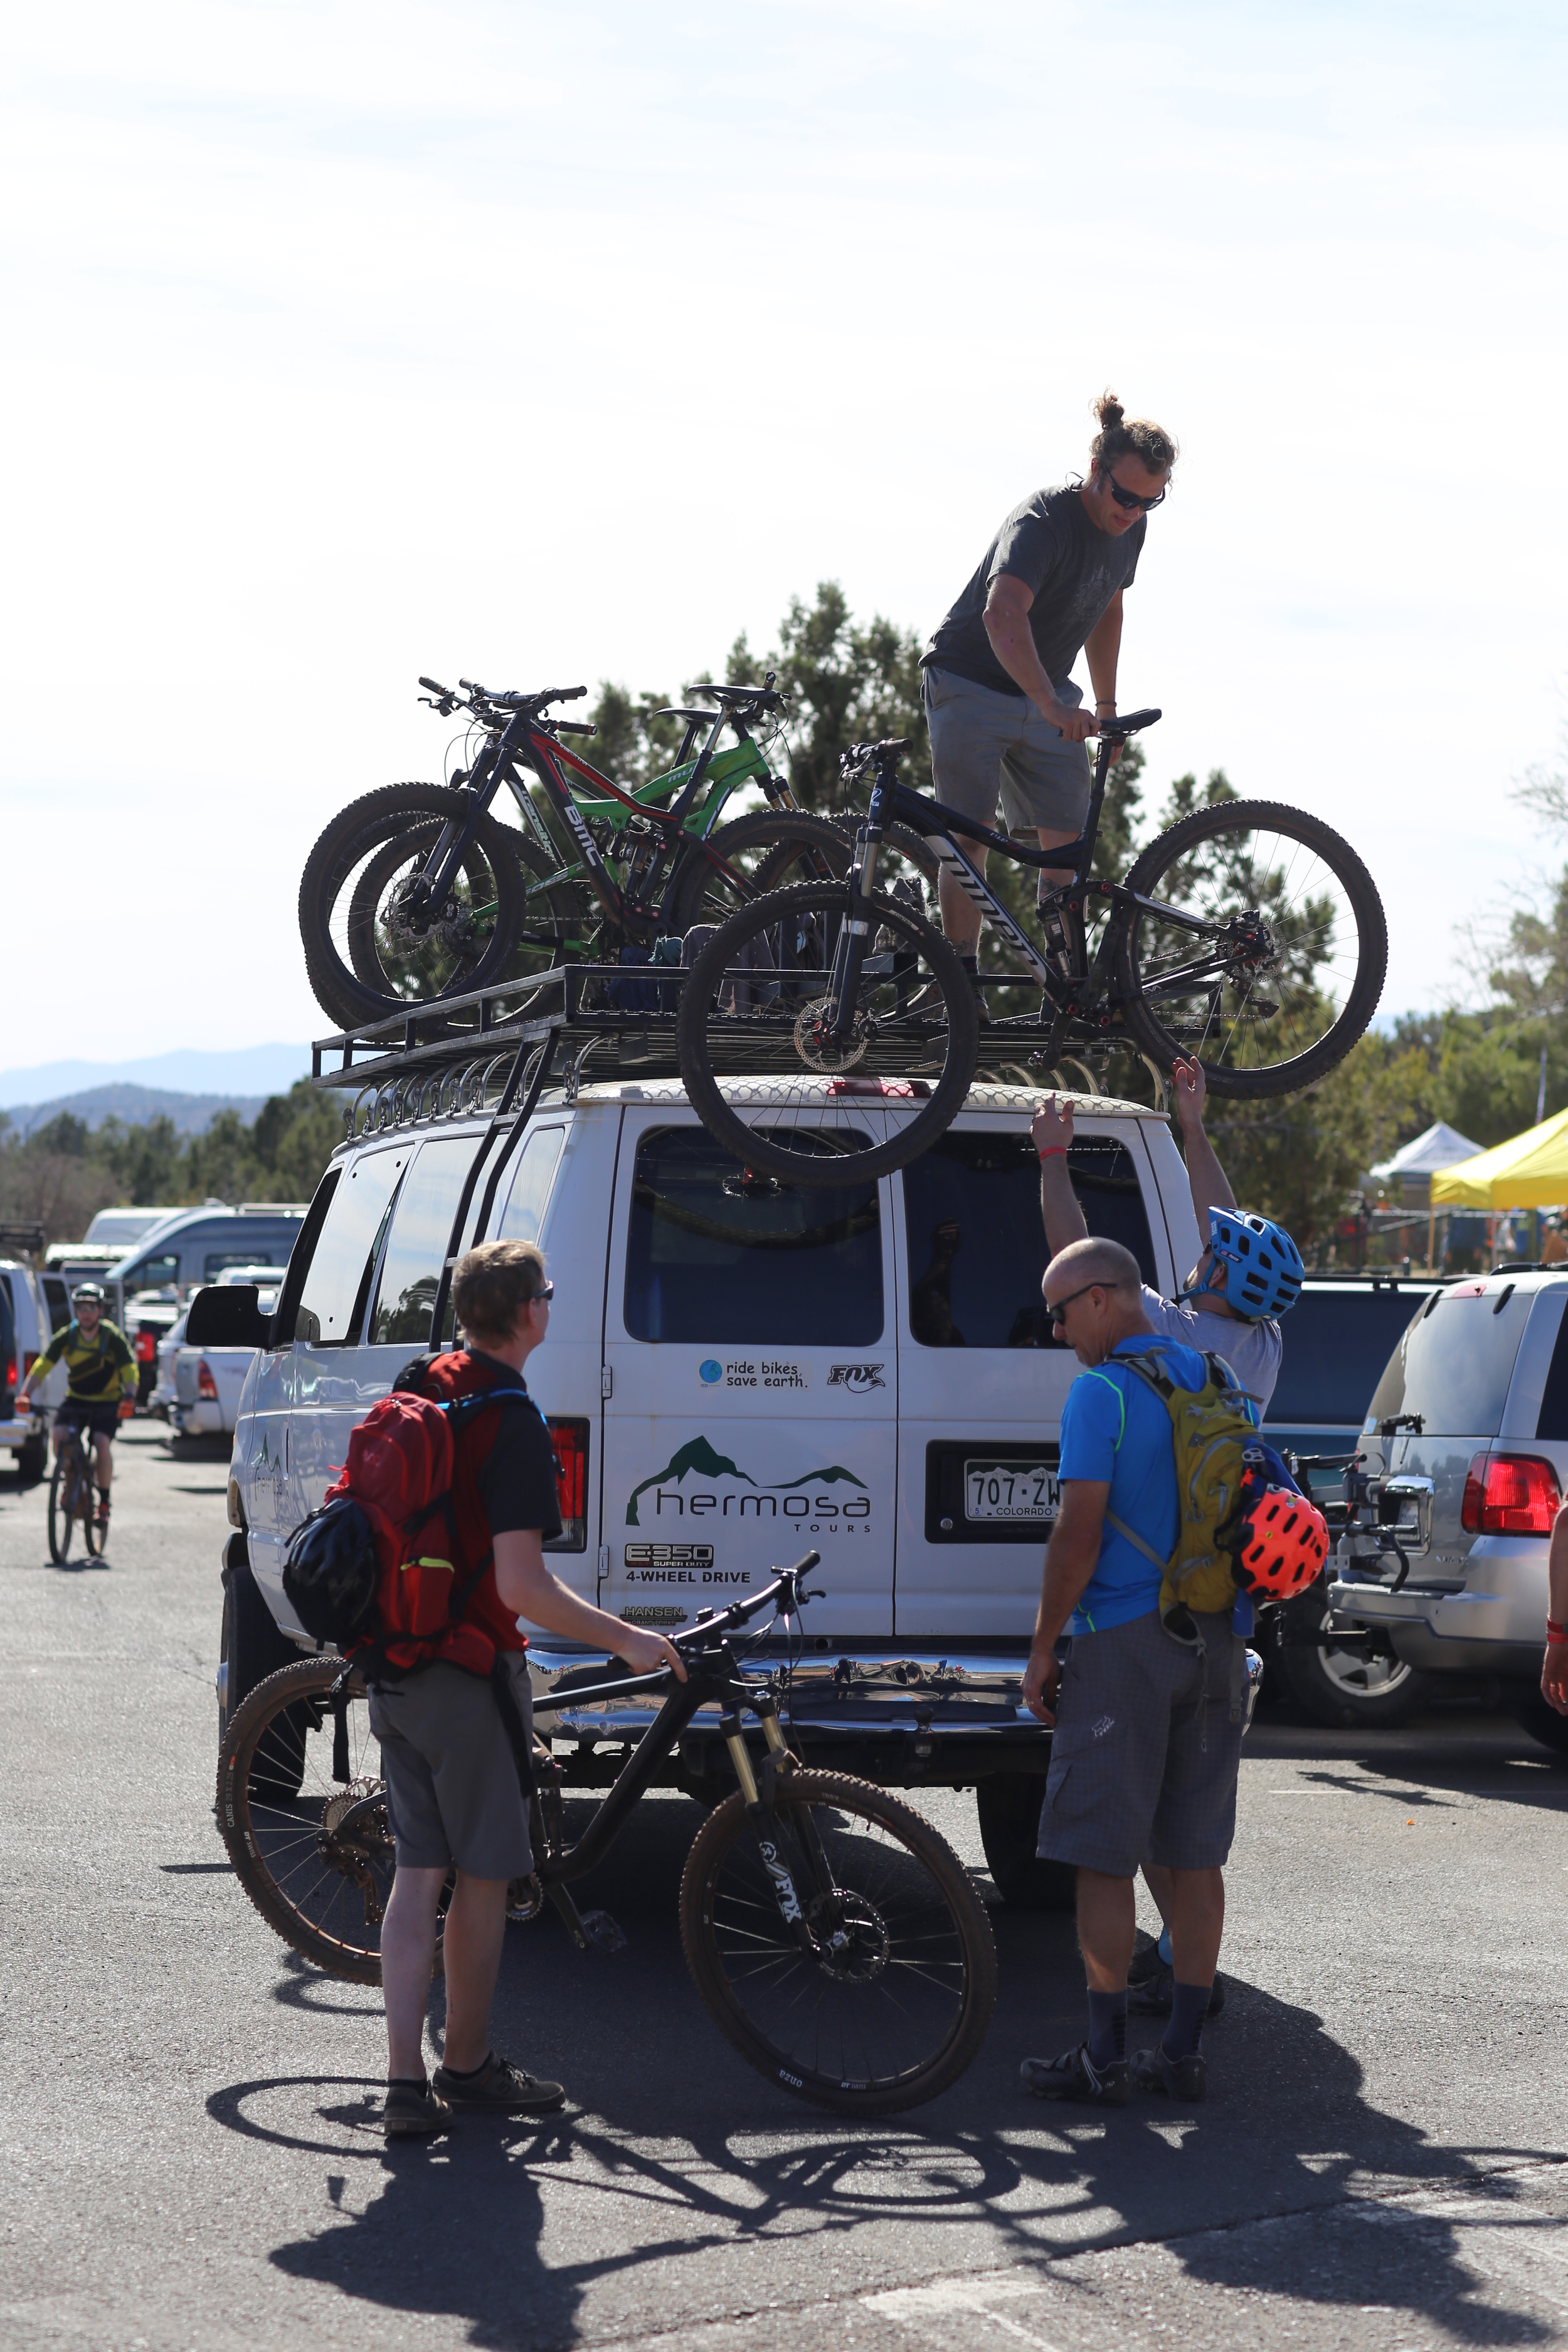 Offloading mountain bikes before some fun on the trails